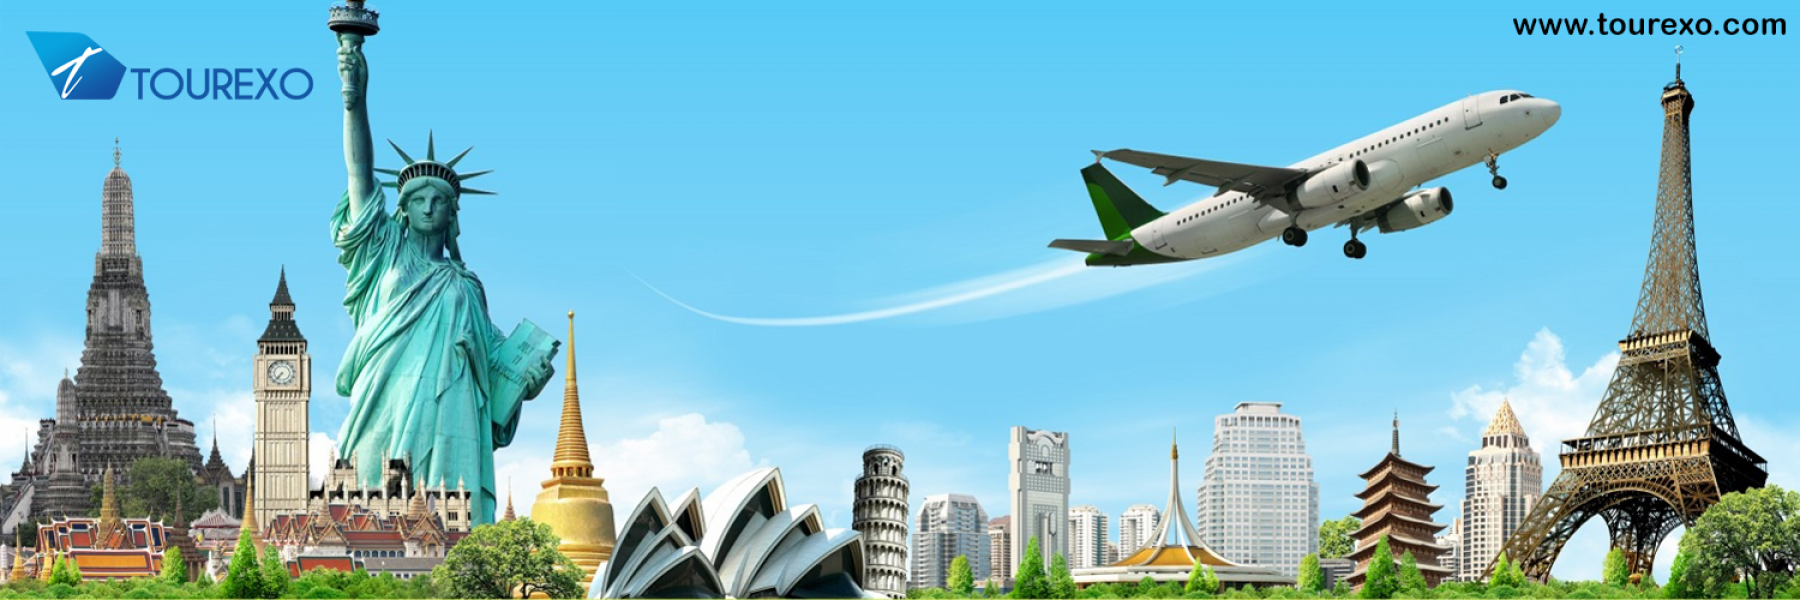 Airline Tickets Booking Online: A Way Towards Simplicity